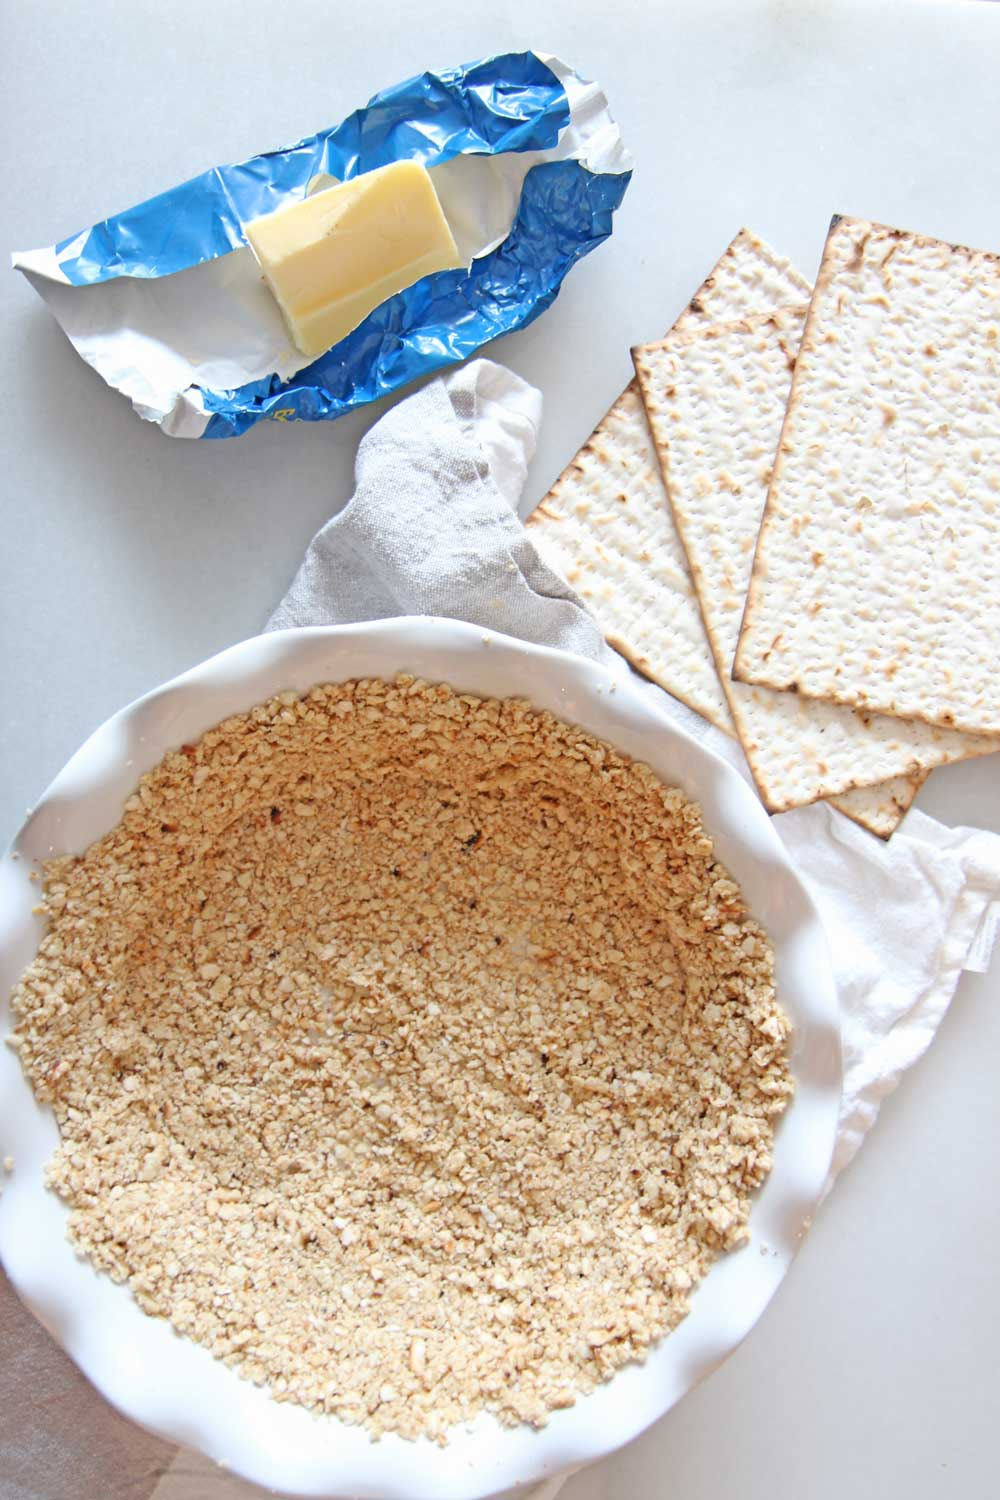 How To Make Matzo Pie Crust Recipe (3 Ingredients)